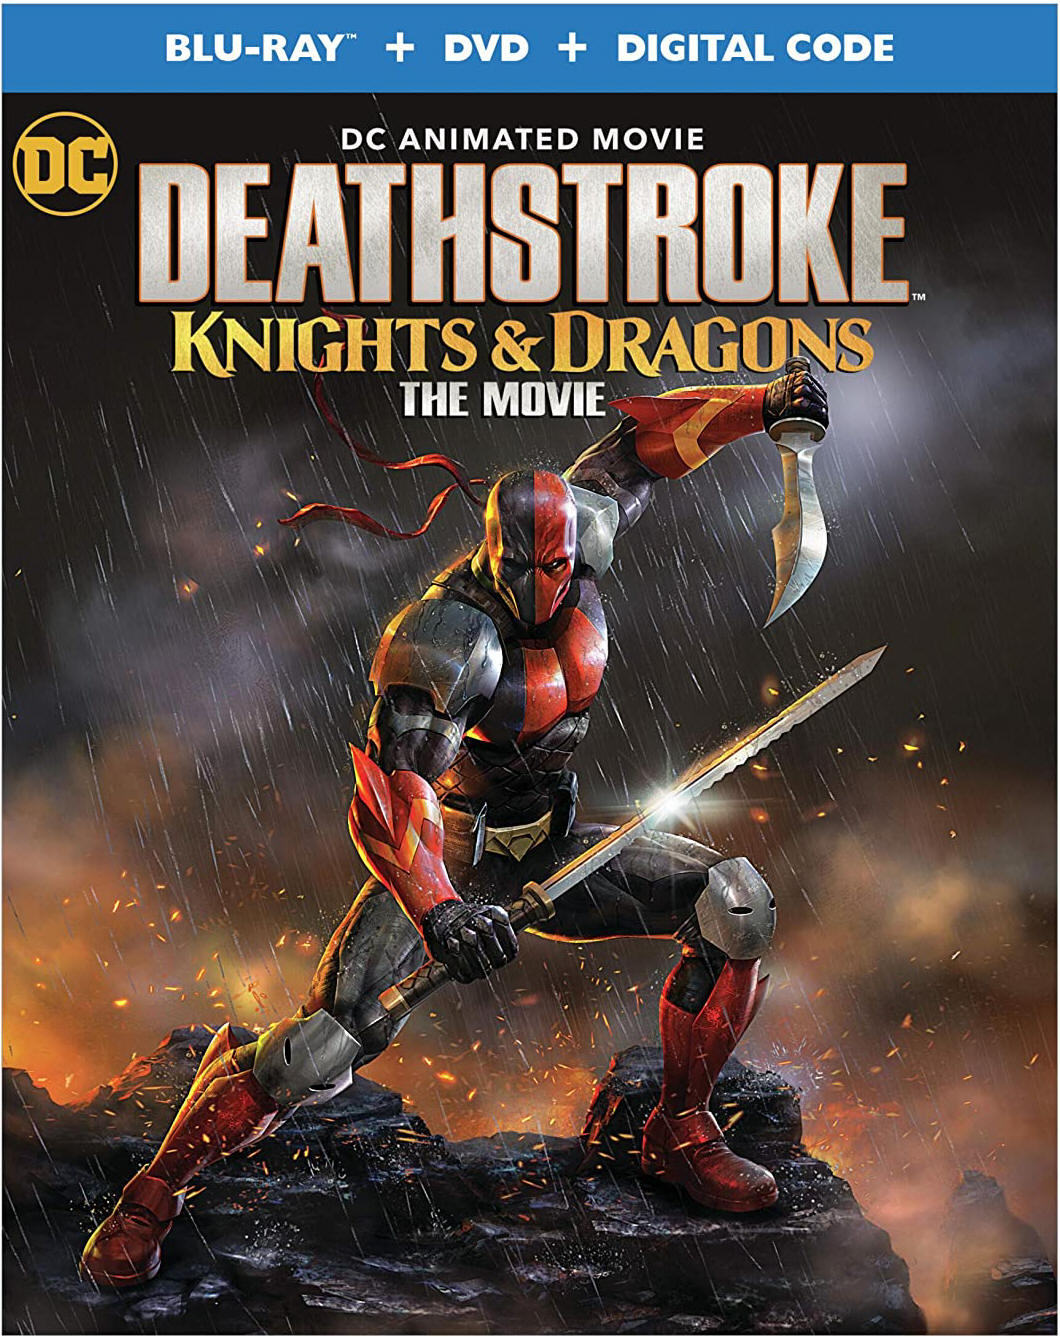 Deathstroke: Knights and Dragons The Movie - Amazon